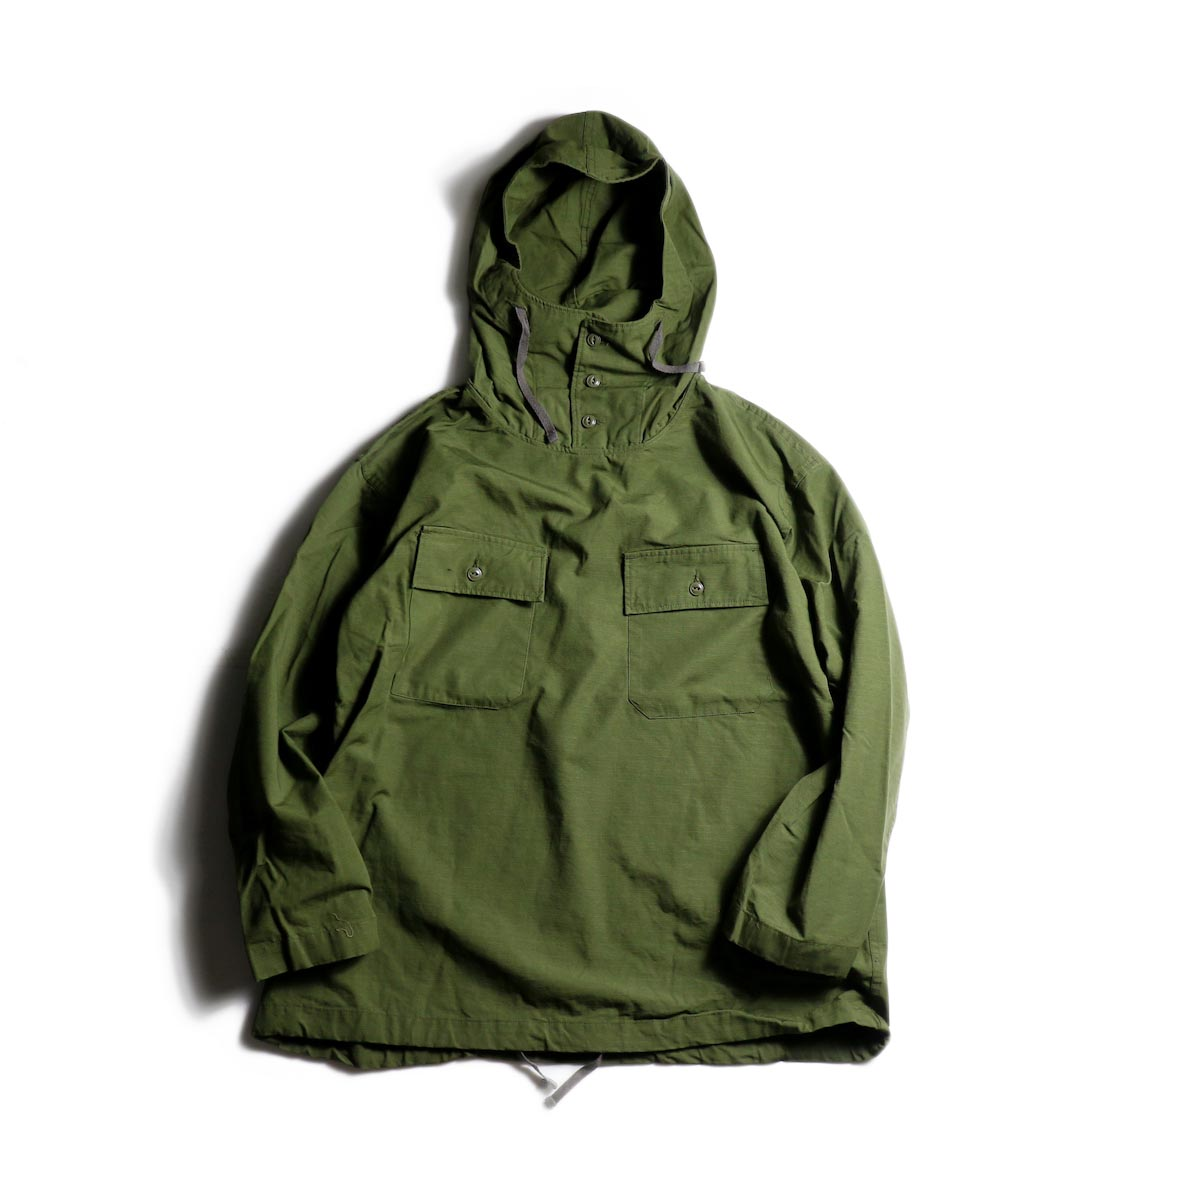 Engineered Garments / Cagoule Shirt -Drab Cotton Ripstop Olive